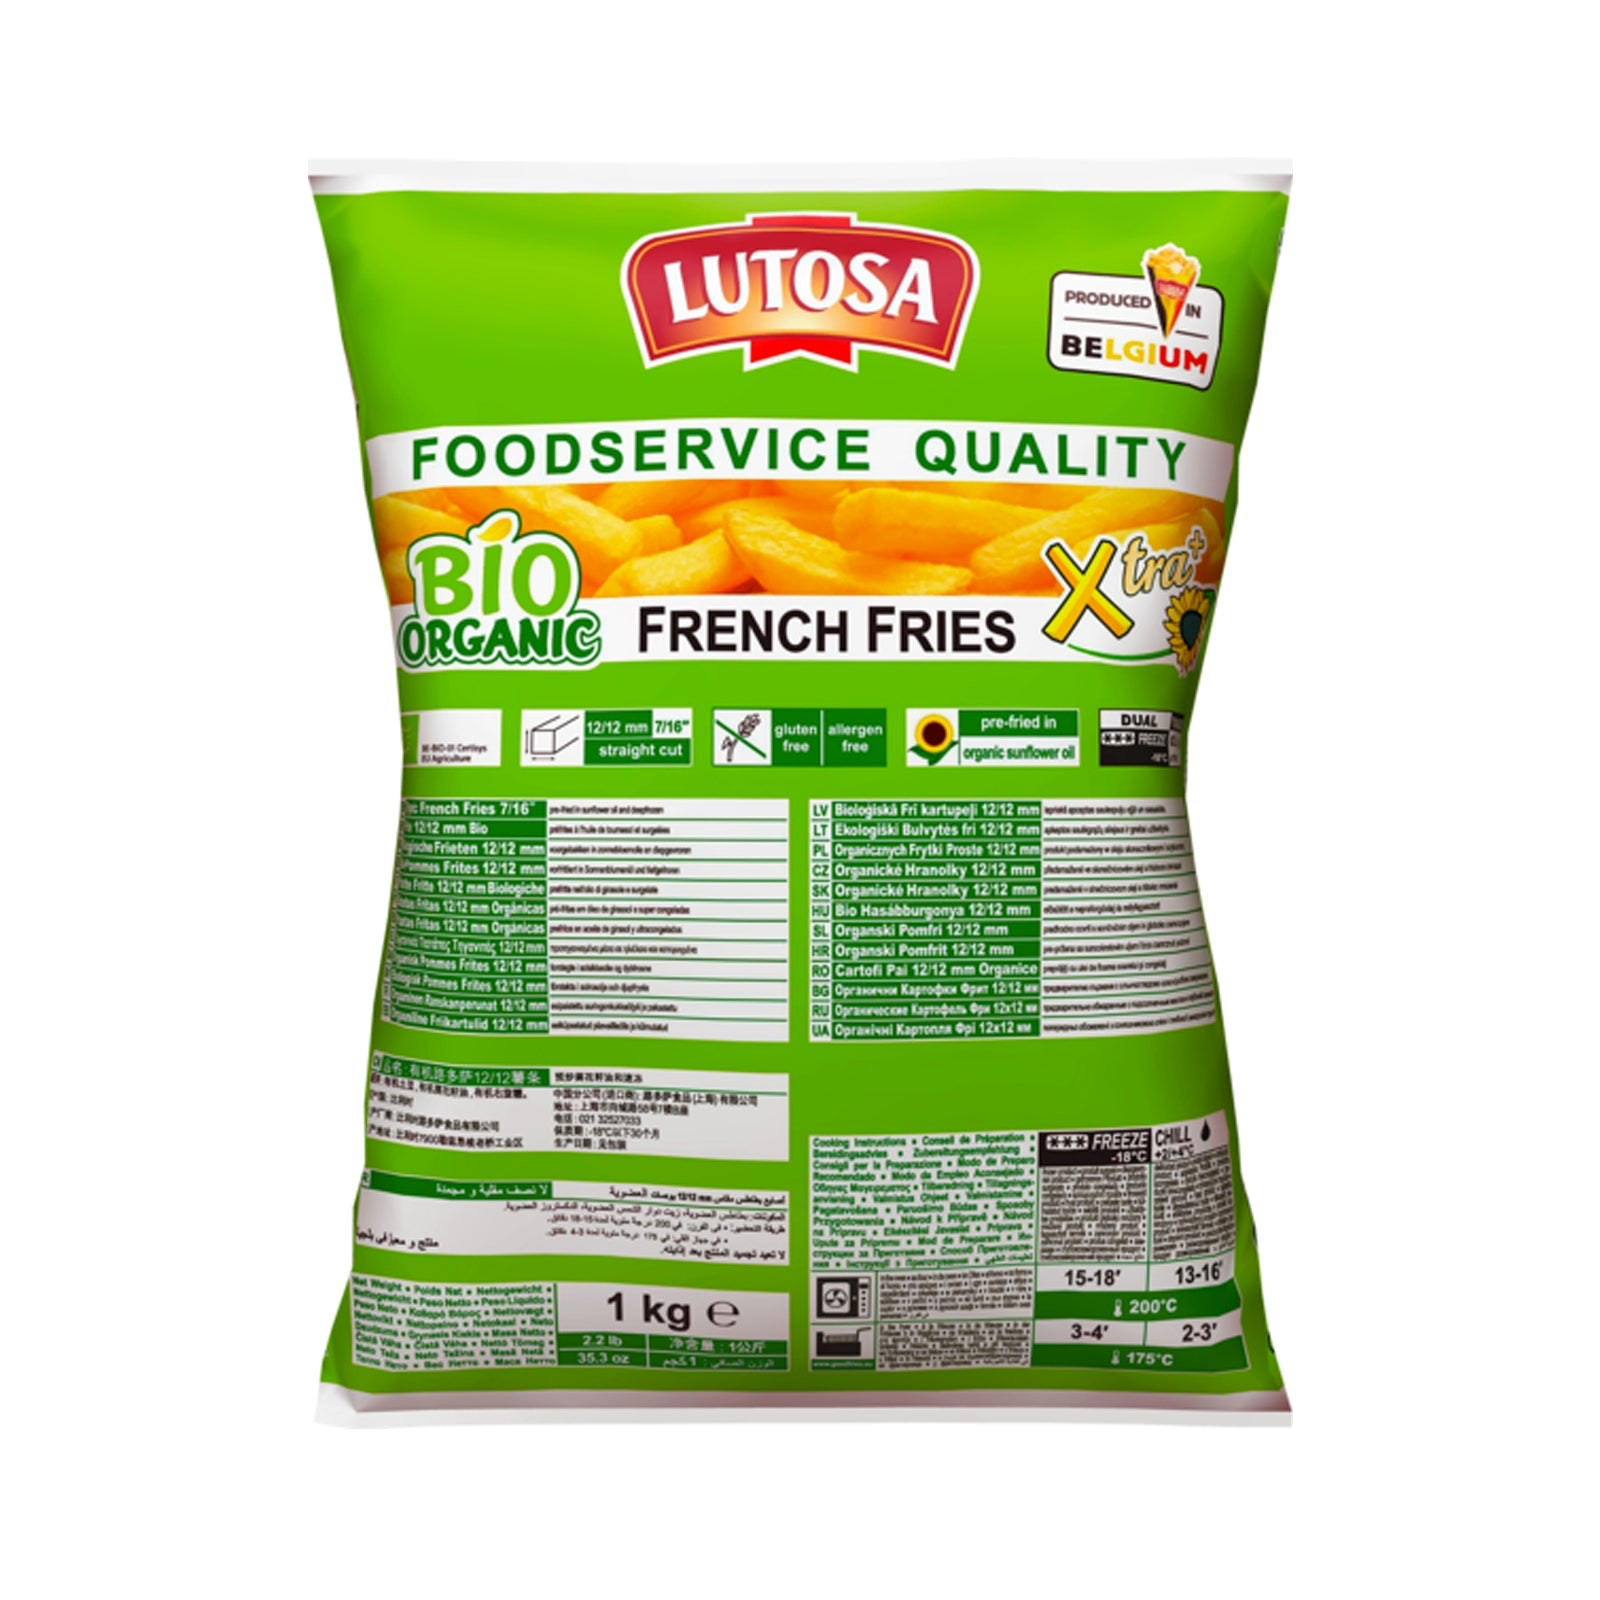 Lutosa Organic 7/16 French fries